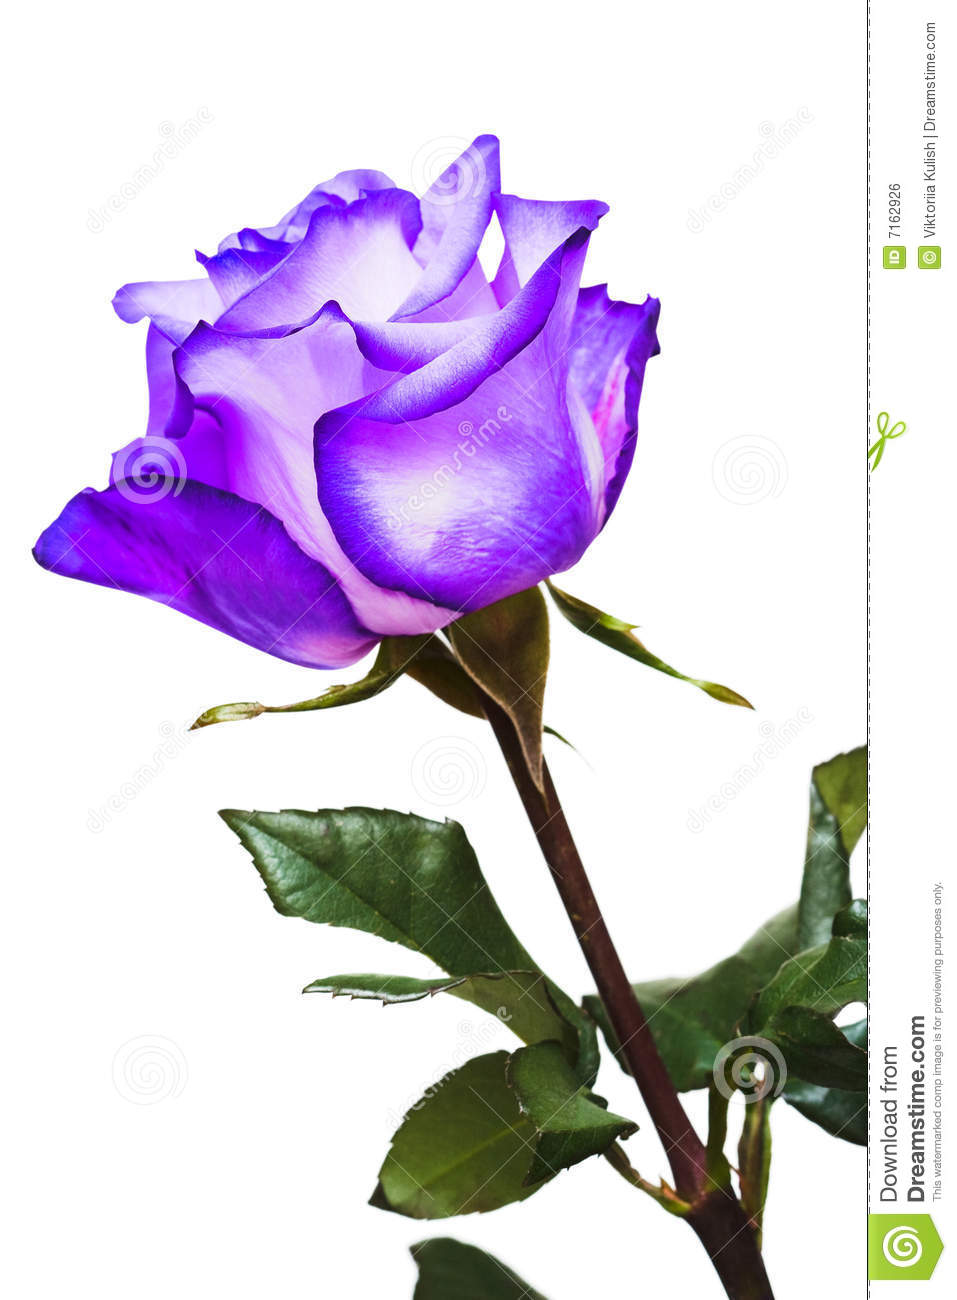 Violet Flower Hd Wallpaper Violet Rose Royalty Free Stock Image Image 7162926